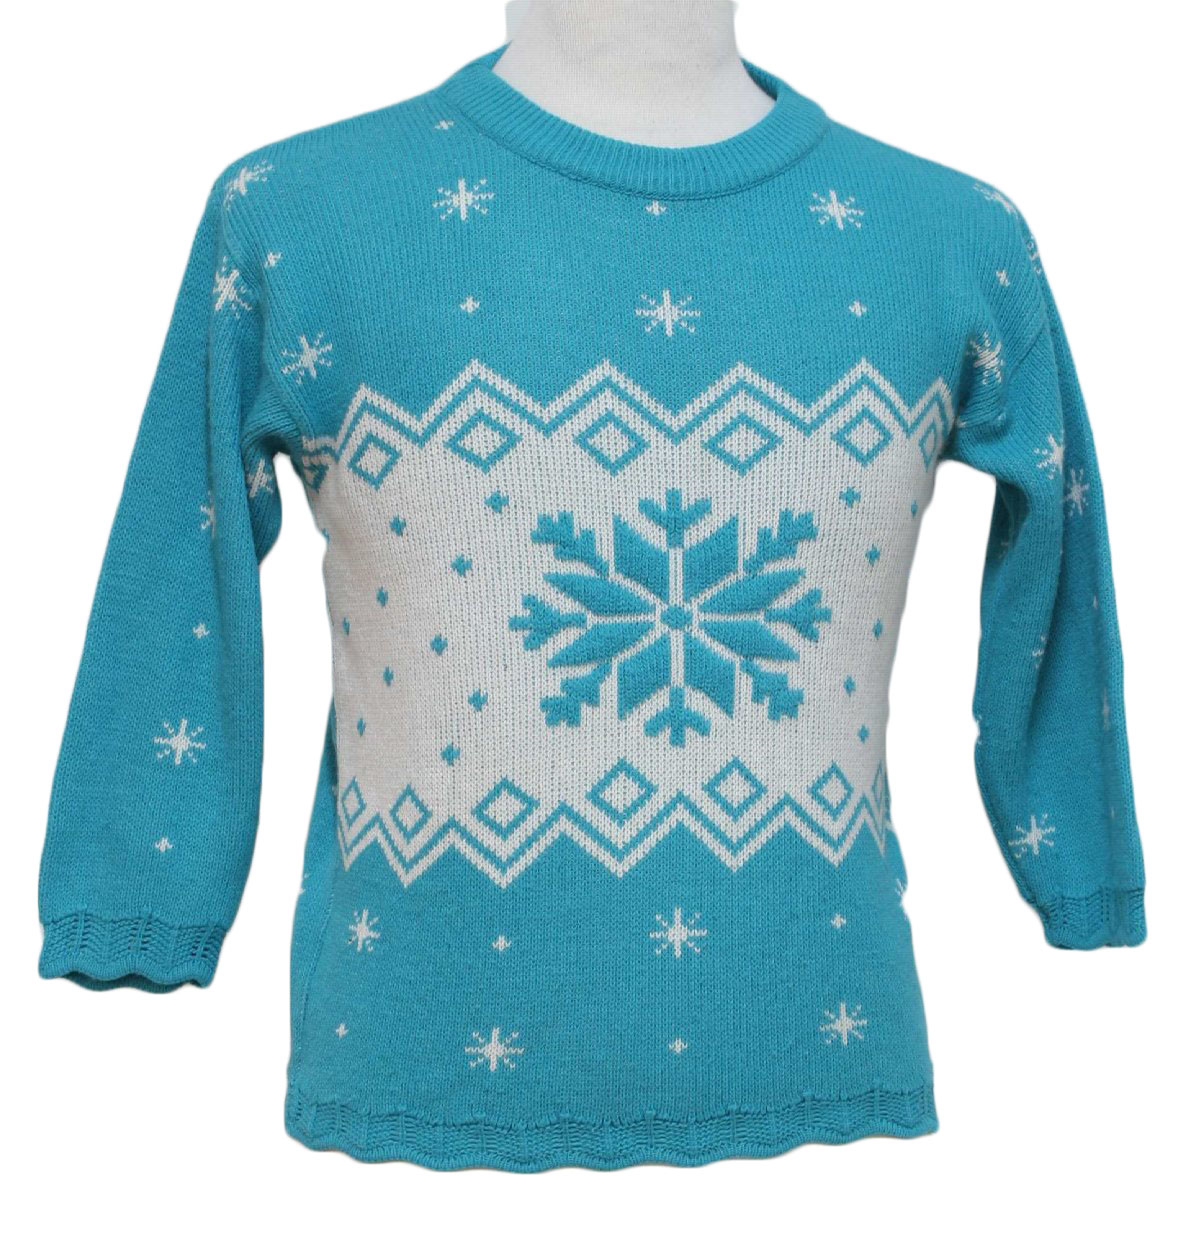 Womens/Girls Ugly Christmas Sweater: -N Kids- Girls light blue ...